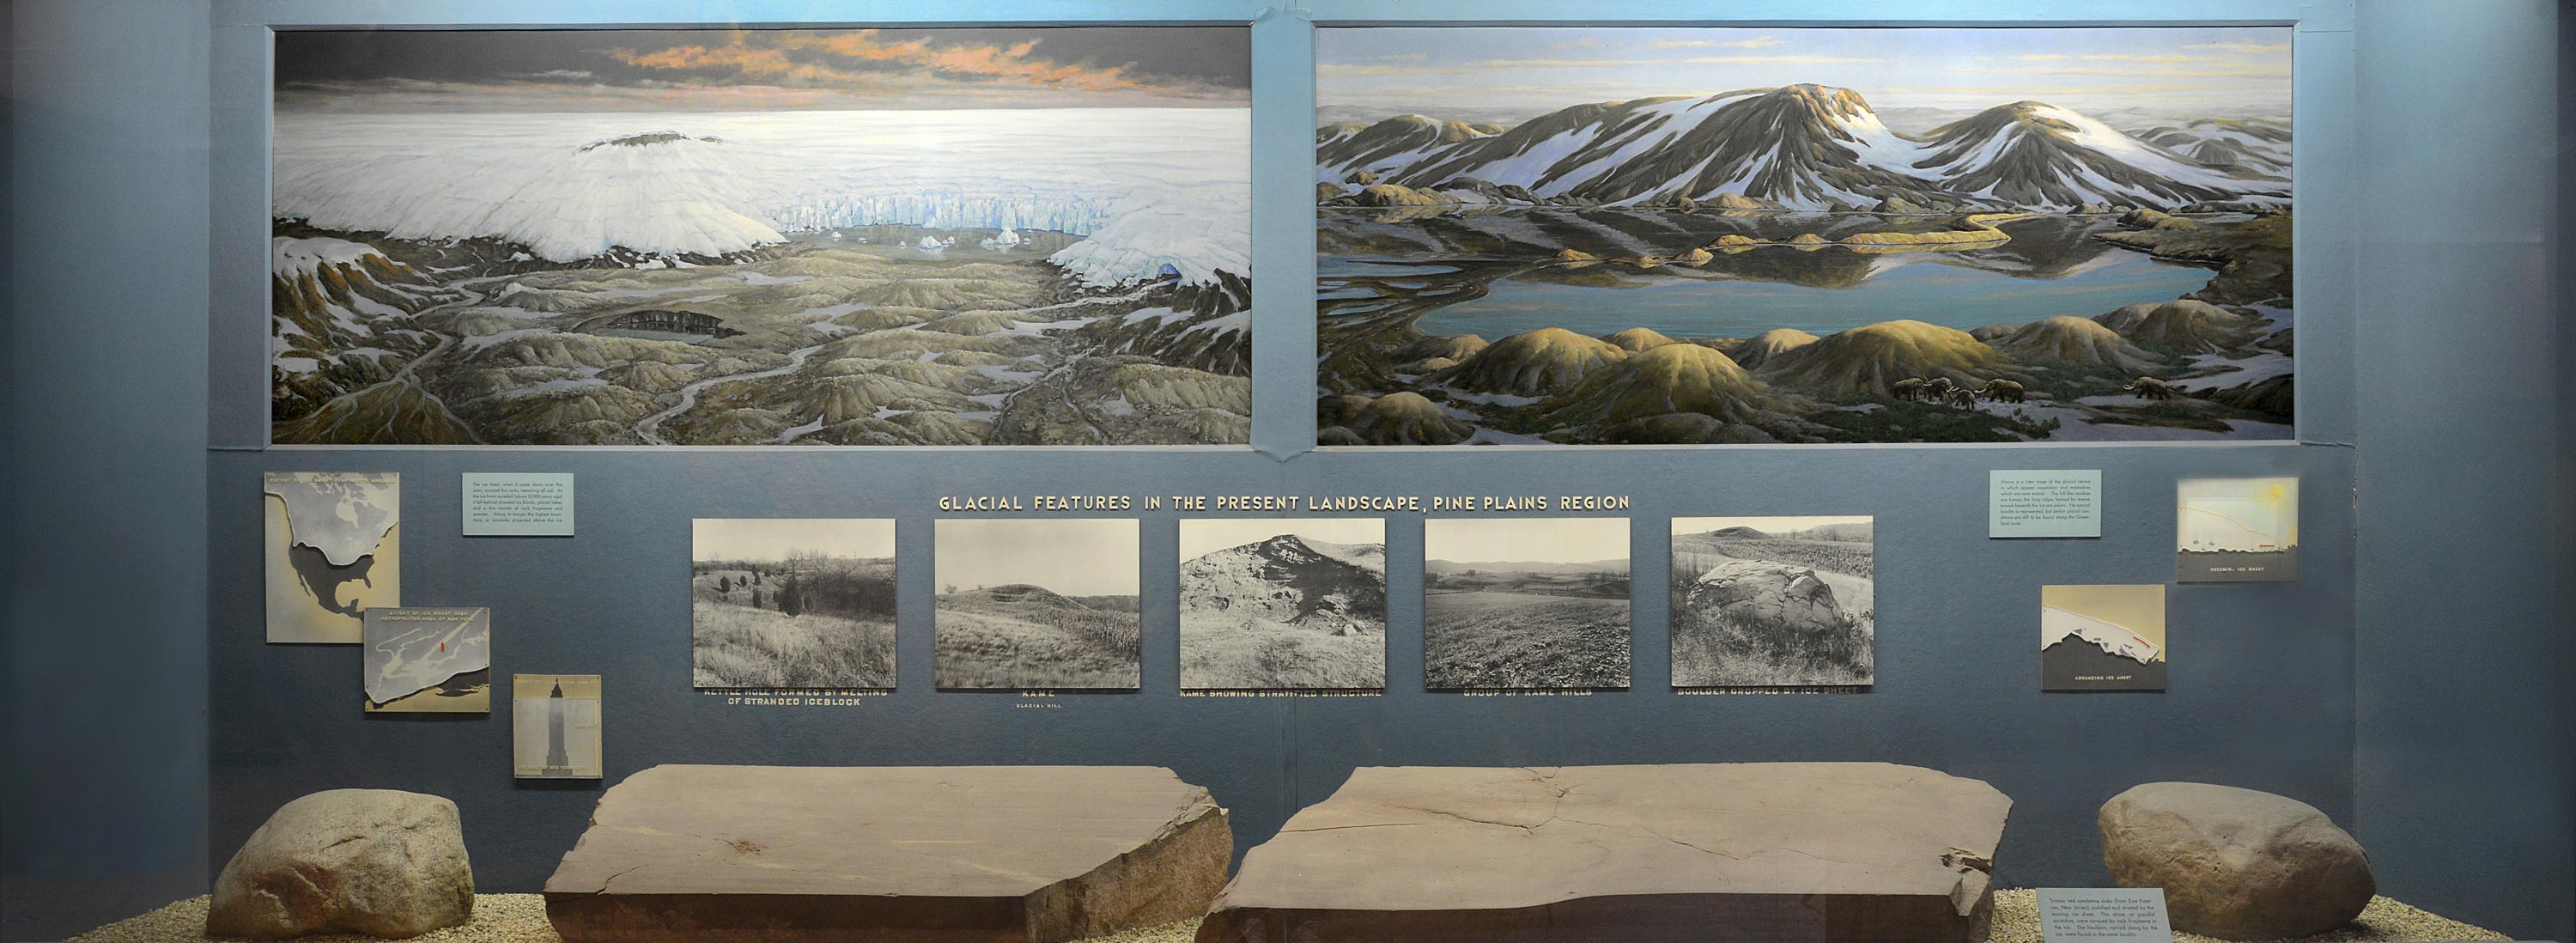 Museum case showing paintings of ice sheet and glacial retreat and sandstone slabs among other pictures and text.